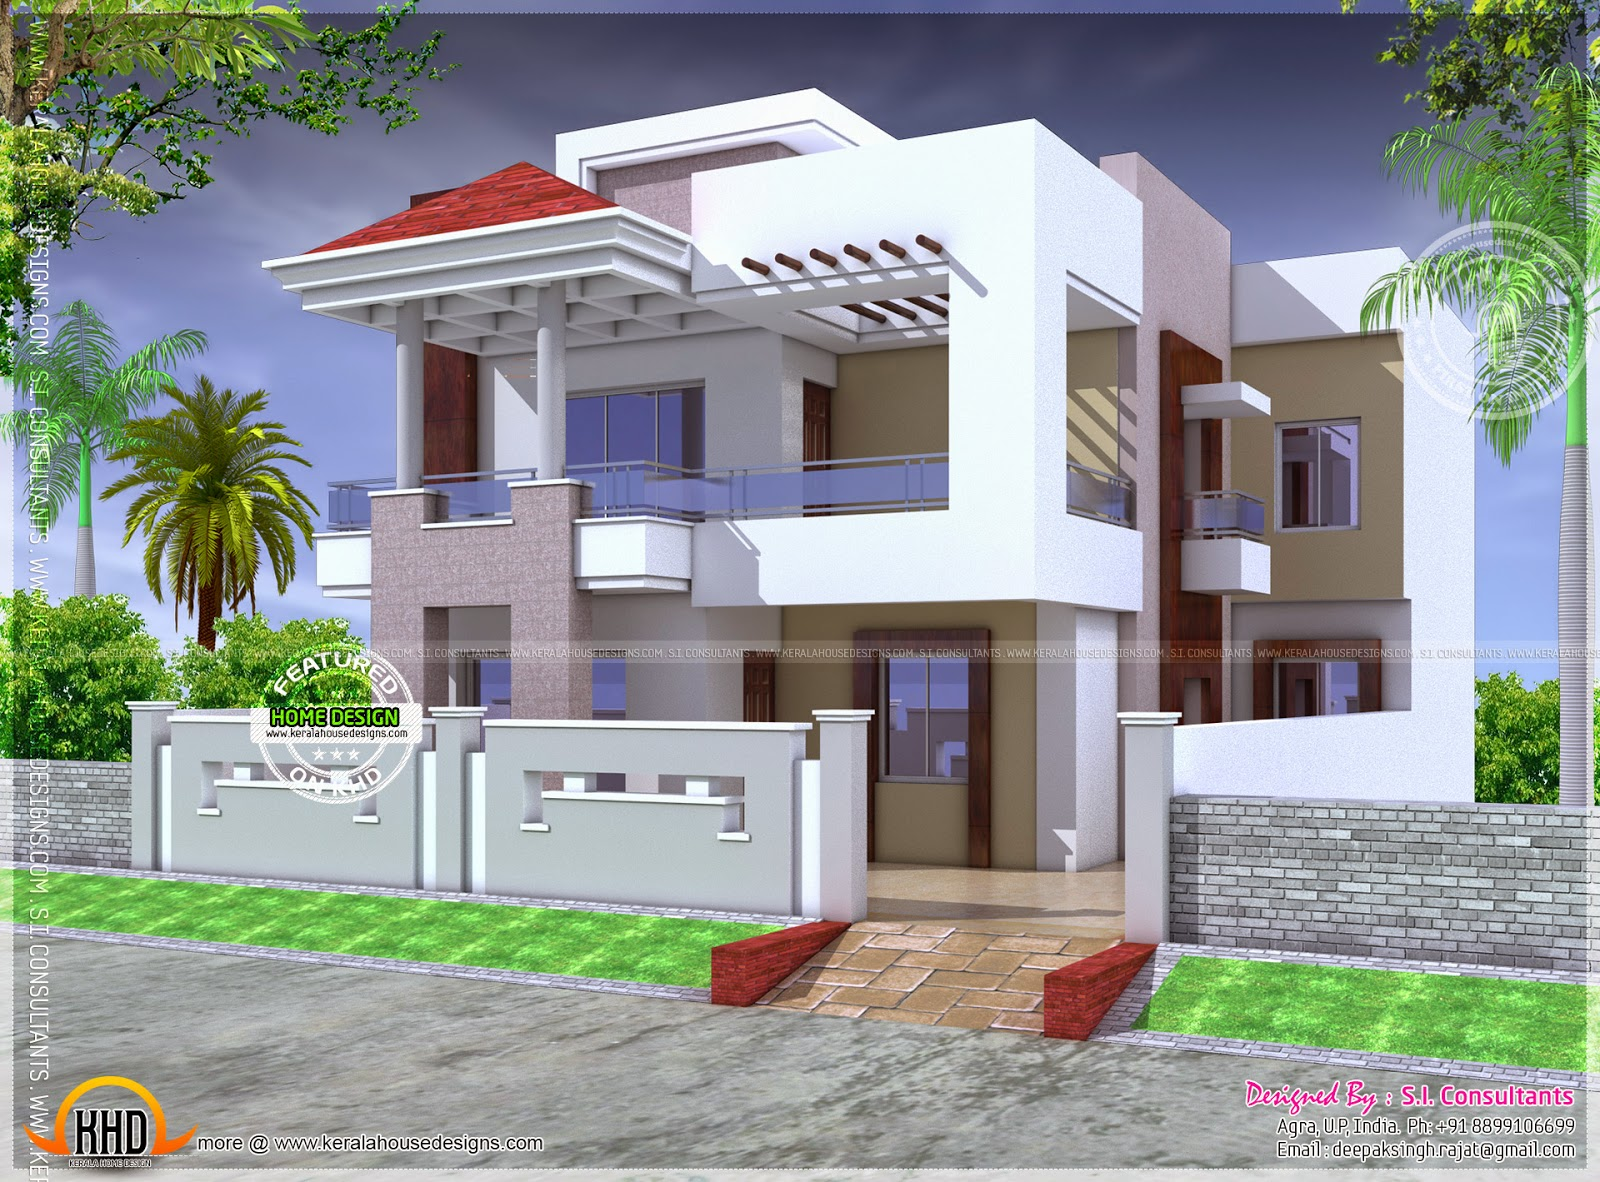 March 2014 kerala home design and floor plans for Small house design plans in india image